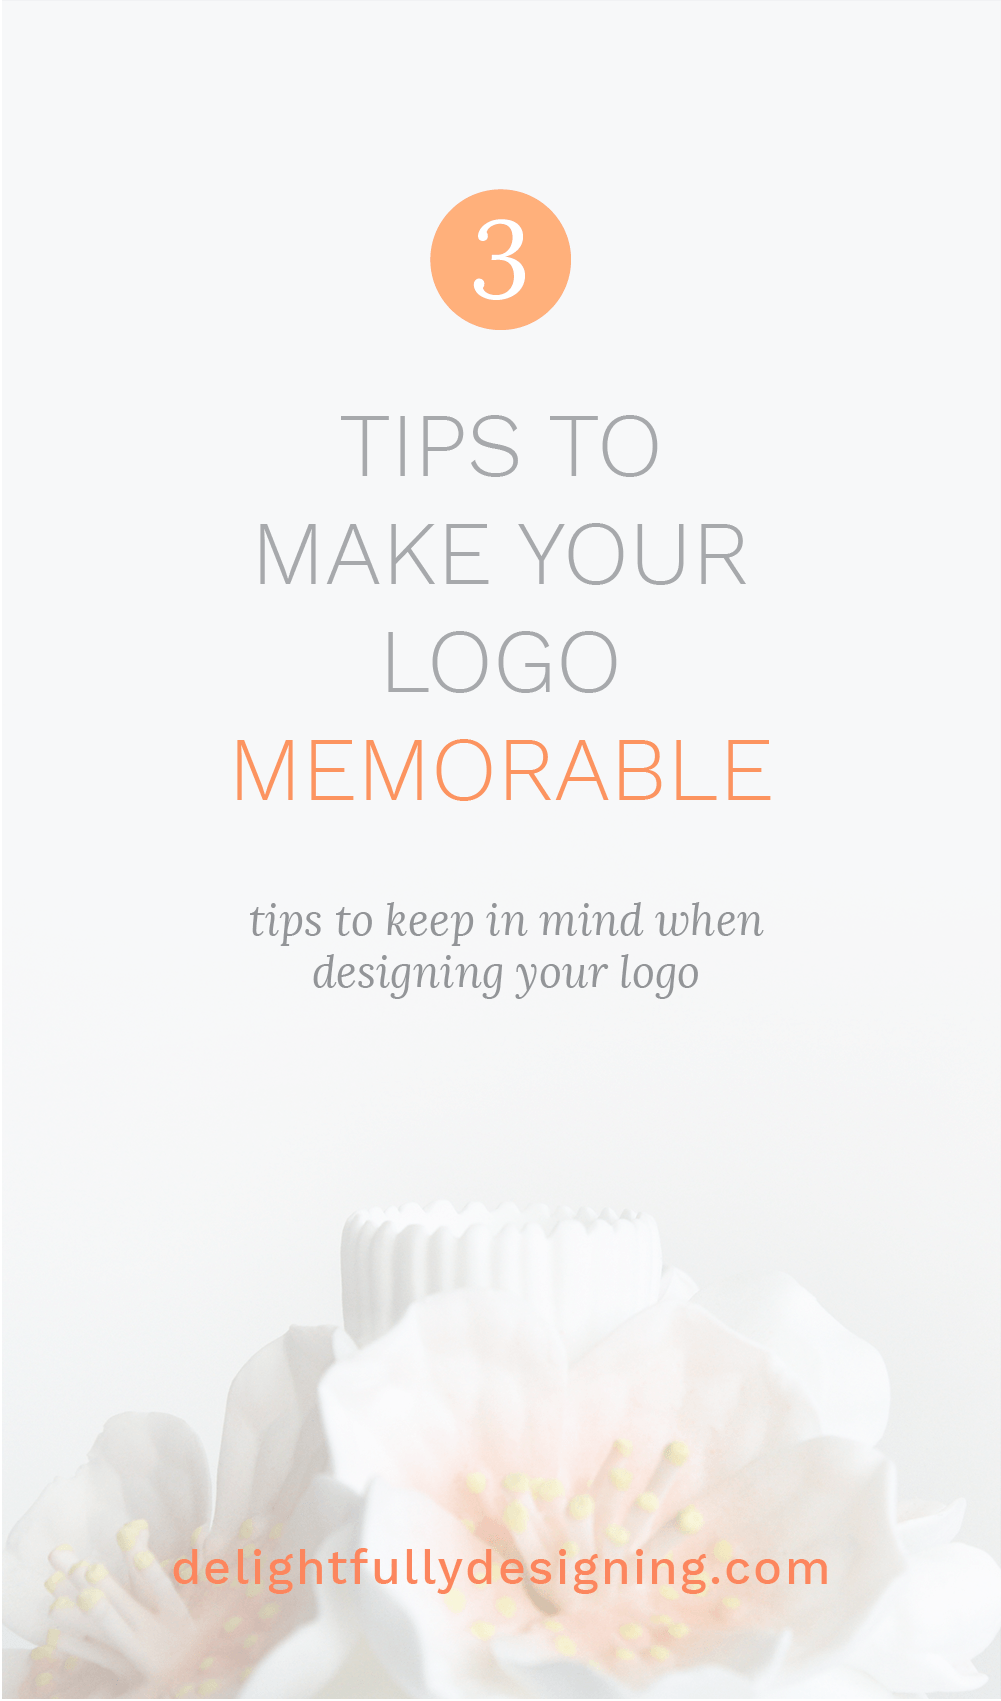 logo design tips, logo design, logos, graphic design, branding, brand design, brand yourself